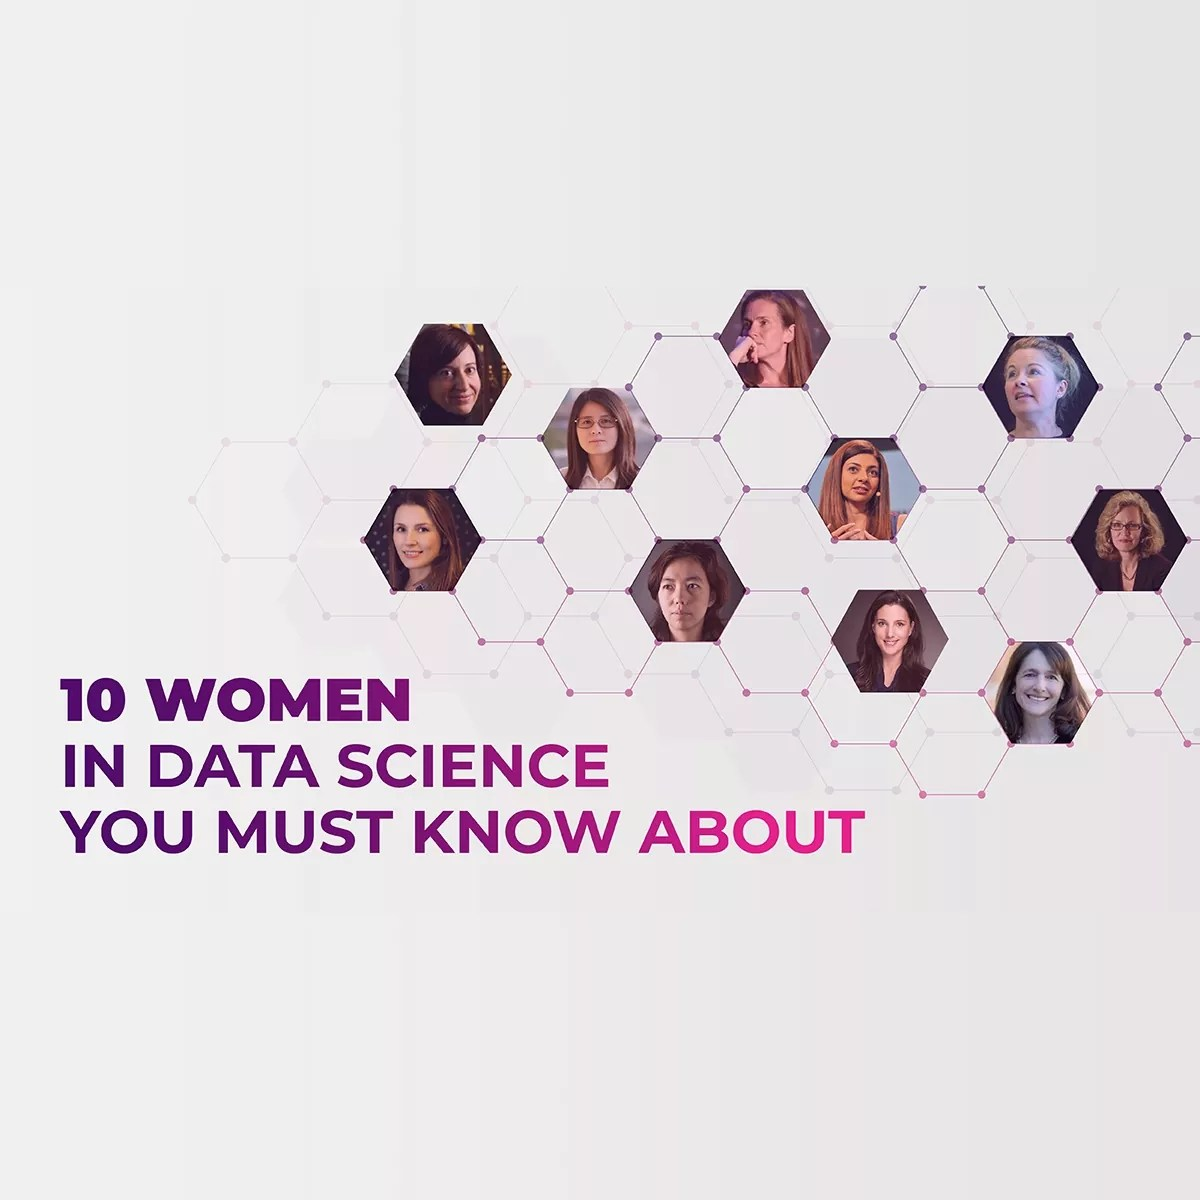 10 Women in Data Science You Must Know About